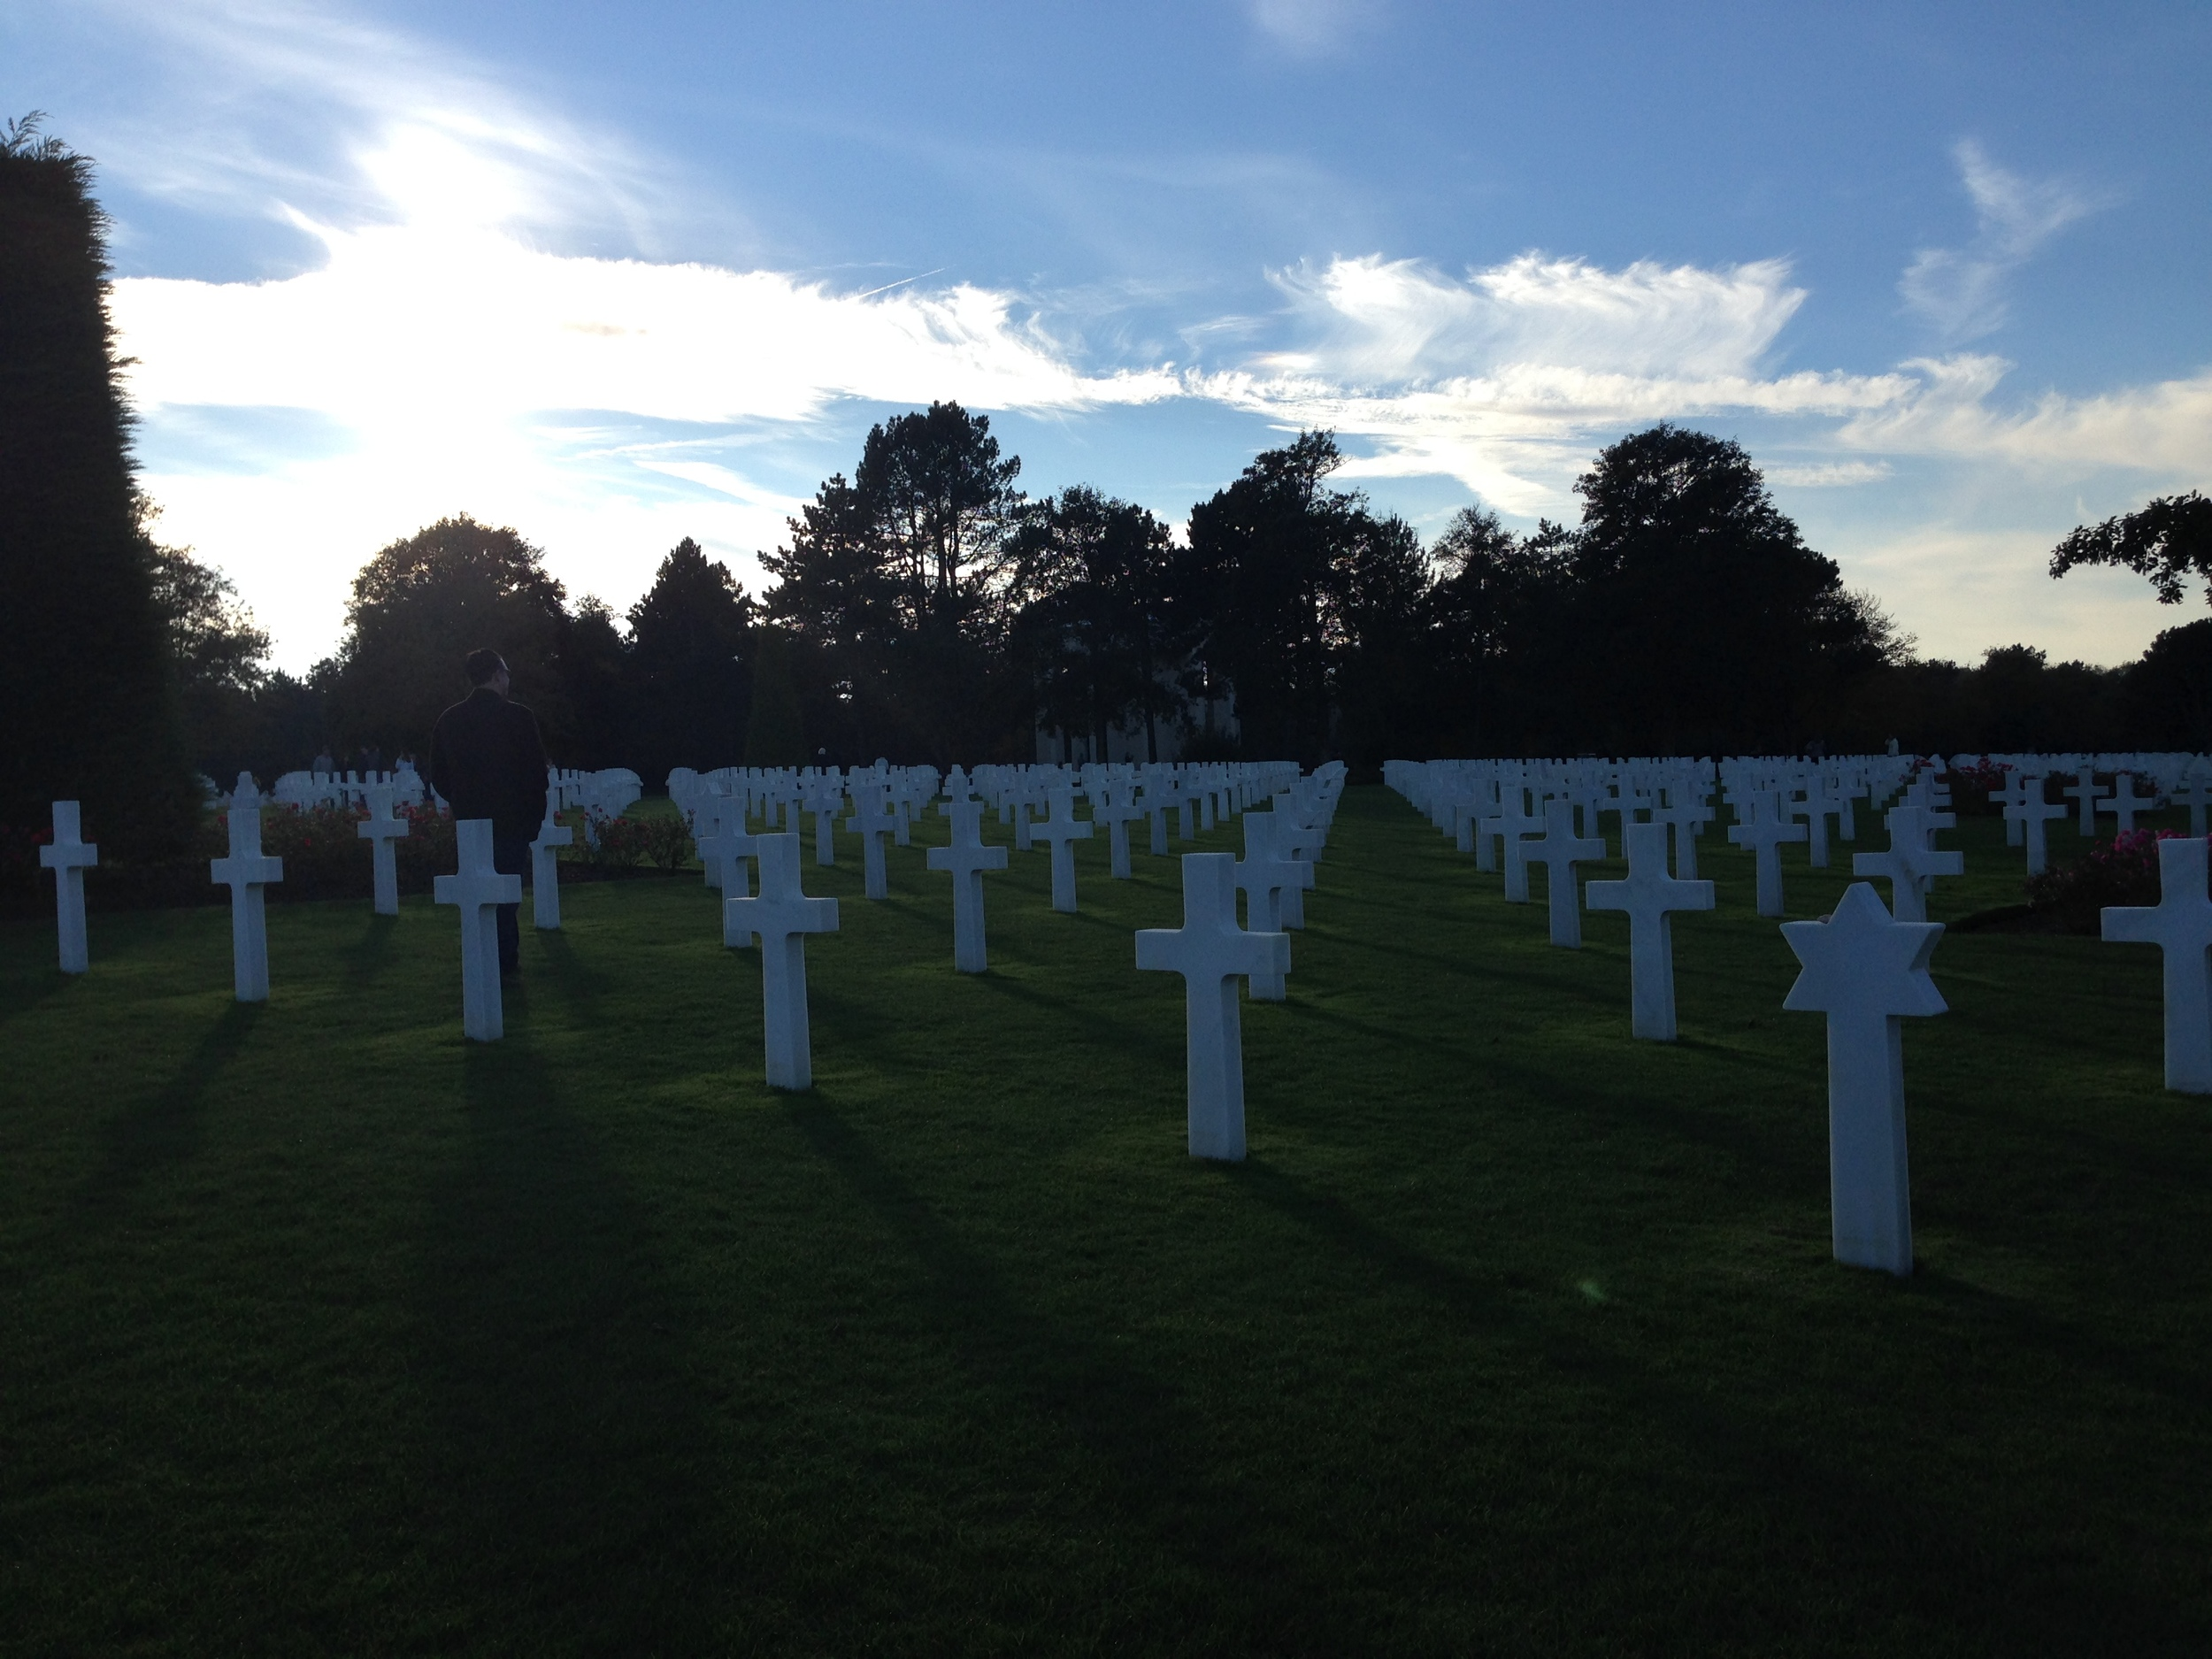 Normandy American Cemetery and Memorial, Colleville-sur-Mer, France. More than 9,000 Americans are buried here, some 50 percent of all American casualties during the D-Day campaign.